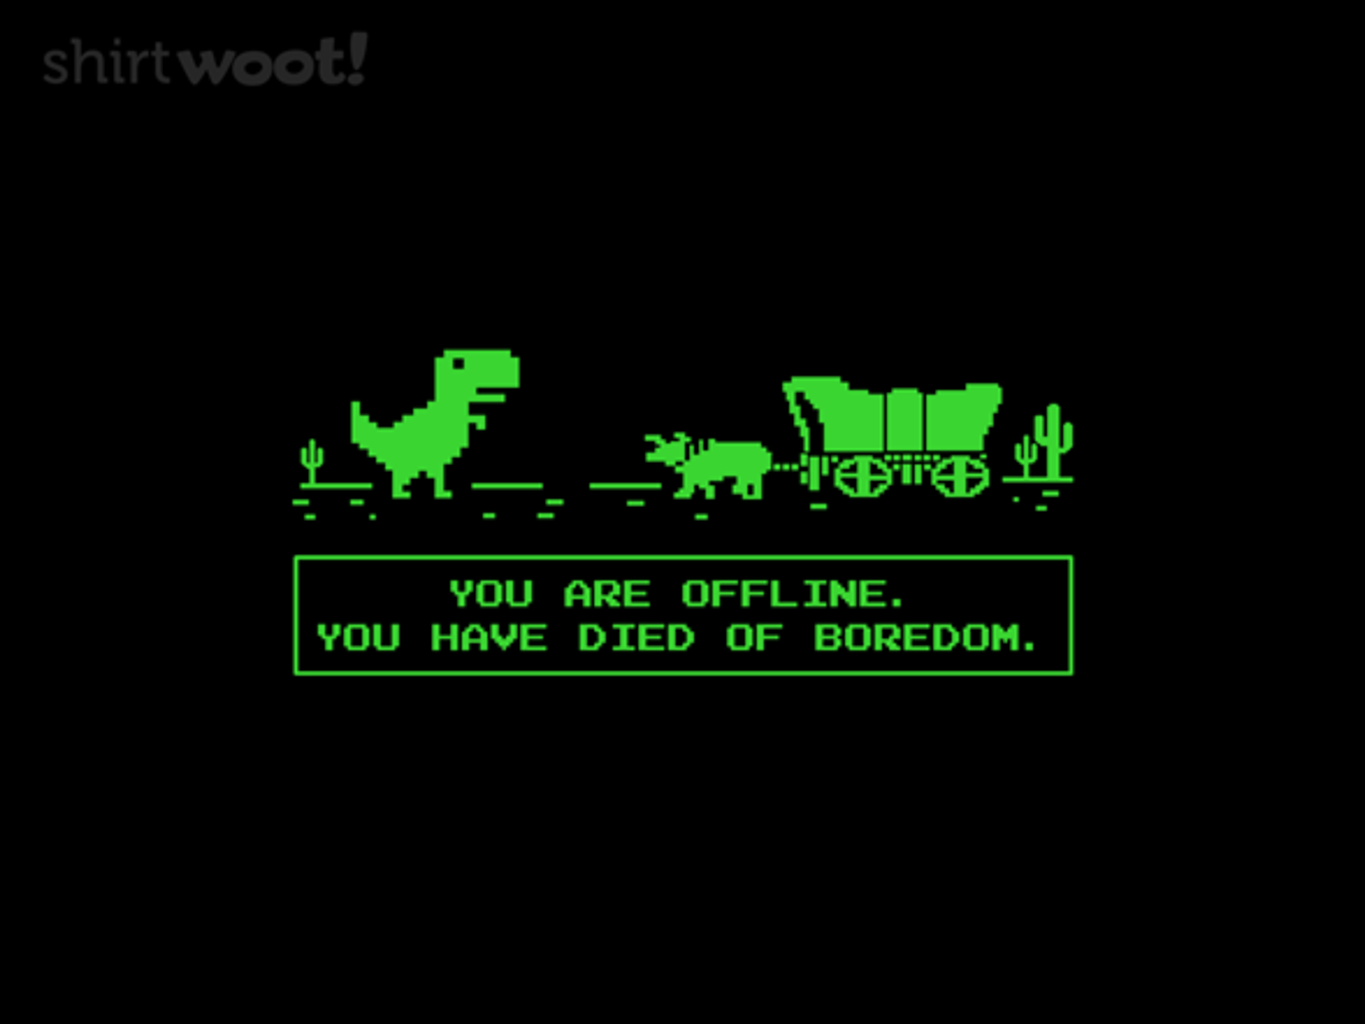 Woot!: Died of Boredom - $15.00 + Free shipping